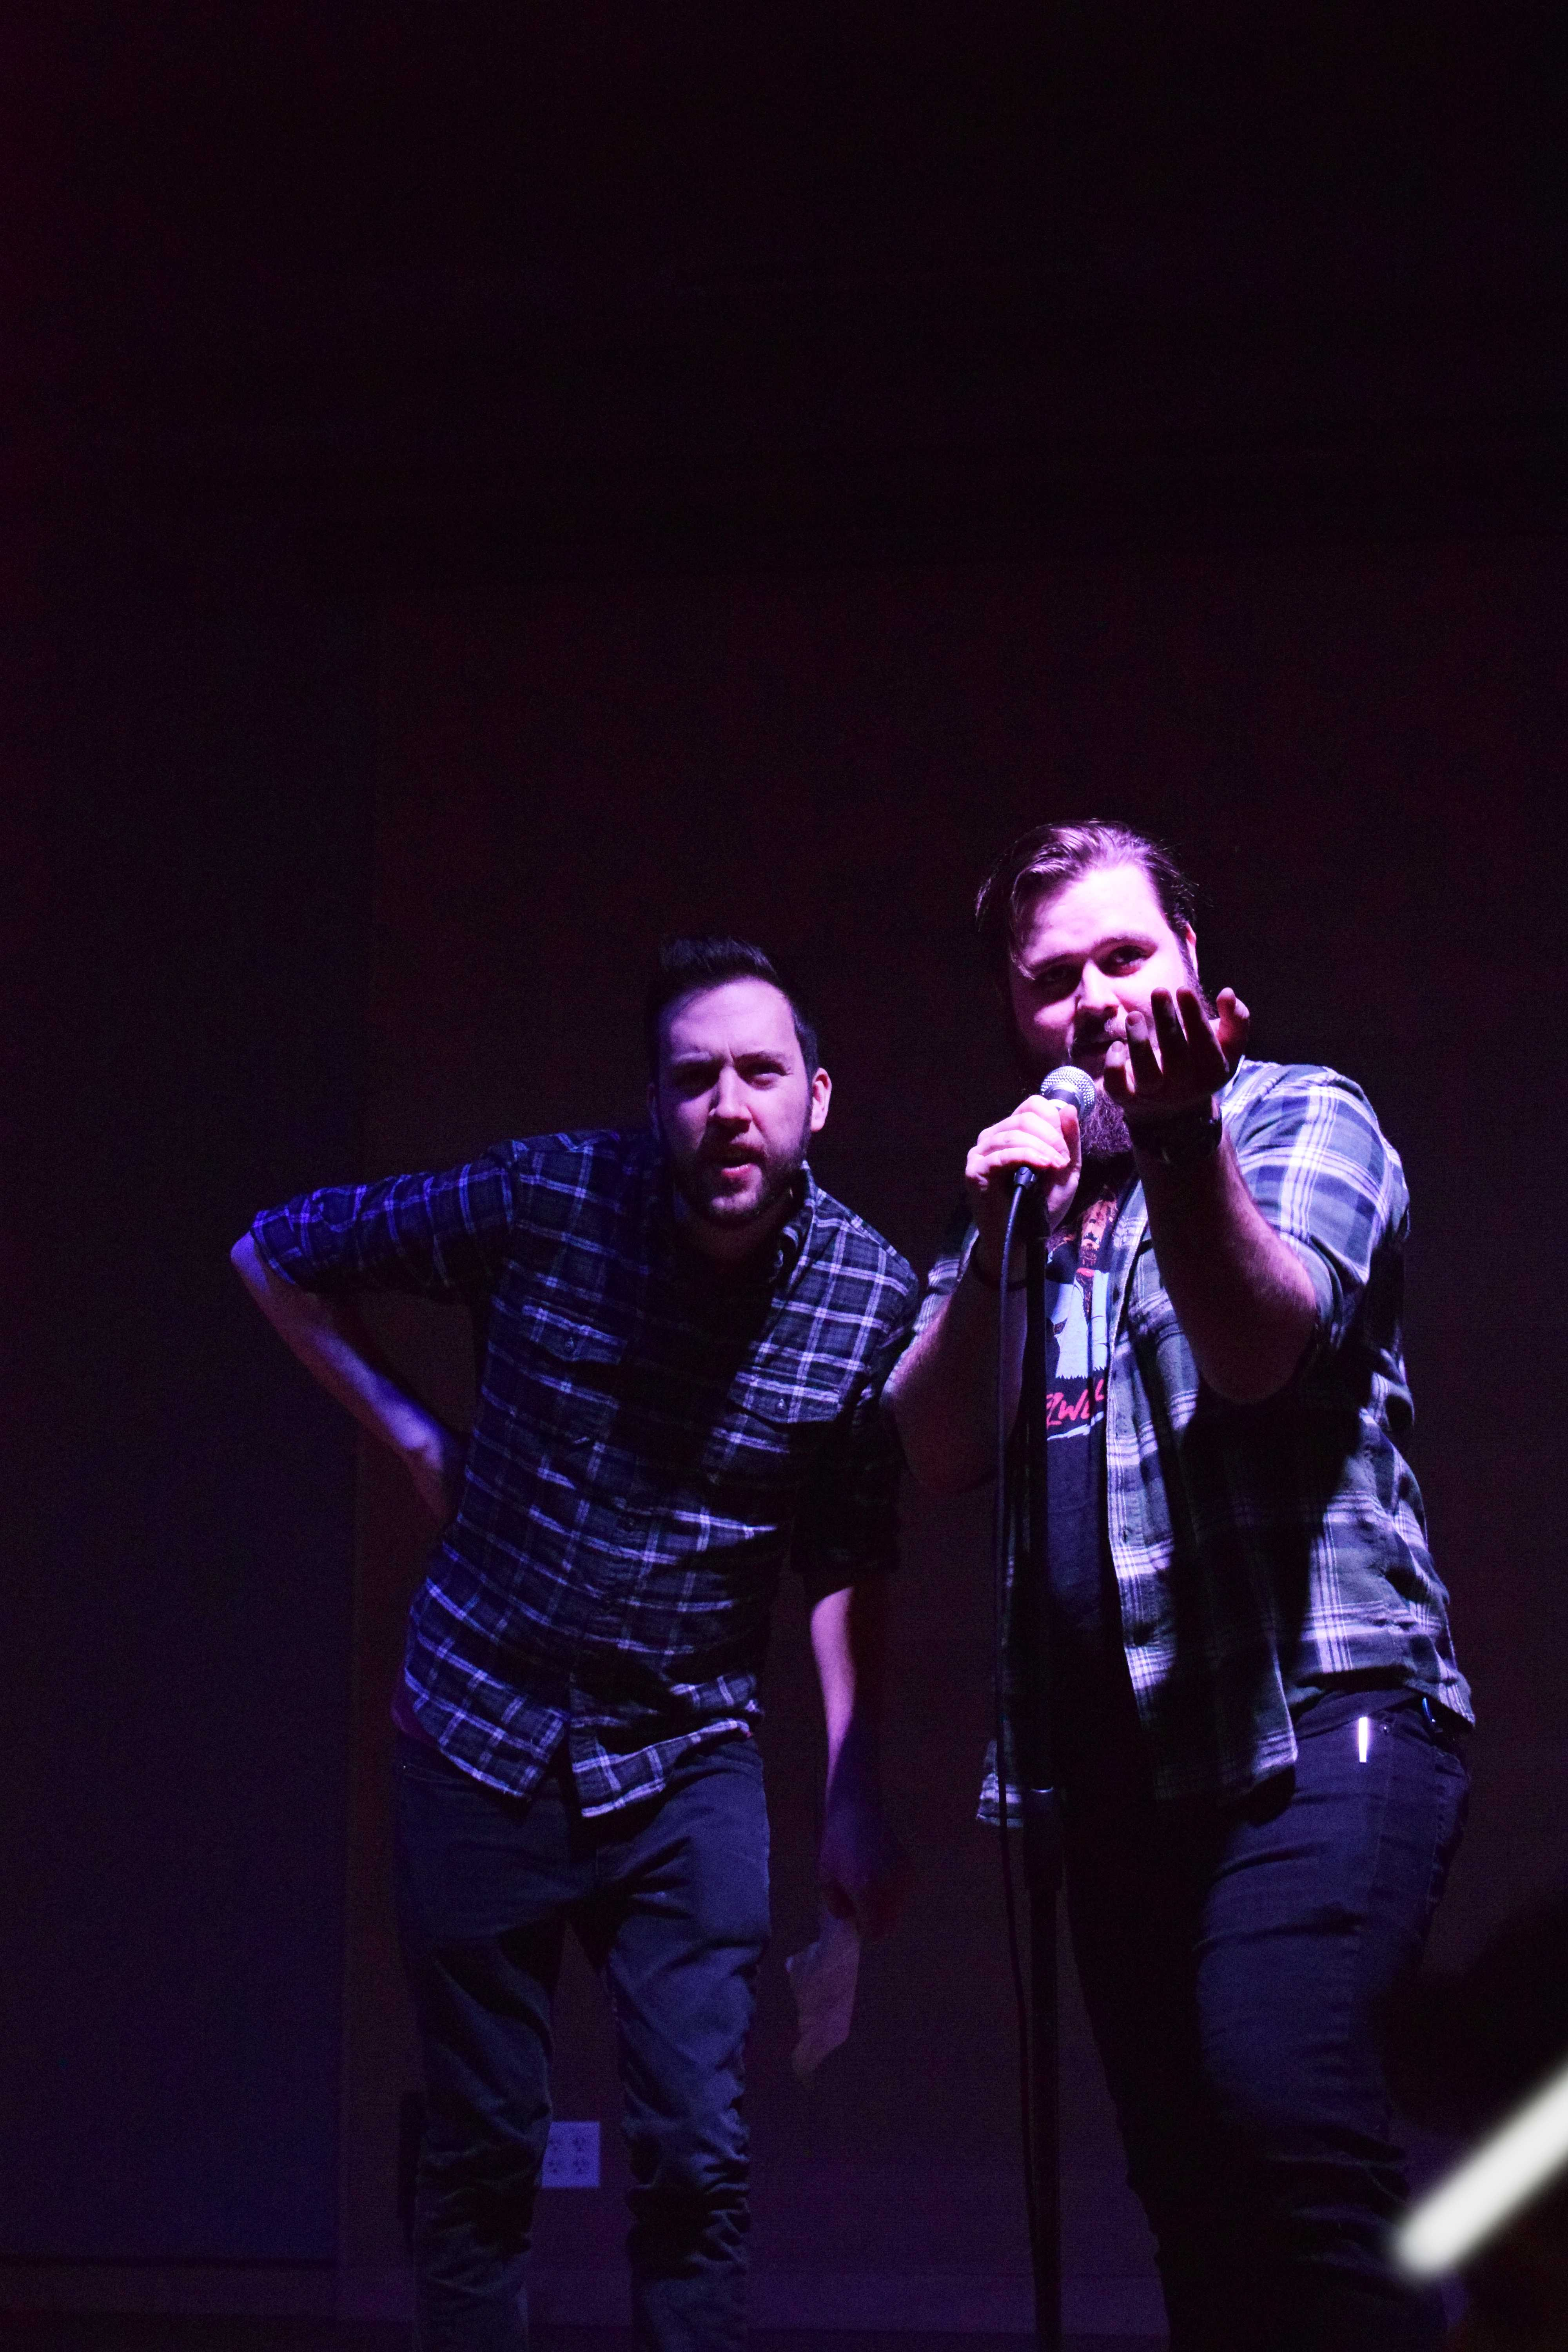 Dylan Garity '12 (left) and Neil Hilborn '11 (right). Photo courtesy of Anja Beth Swoap '19